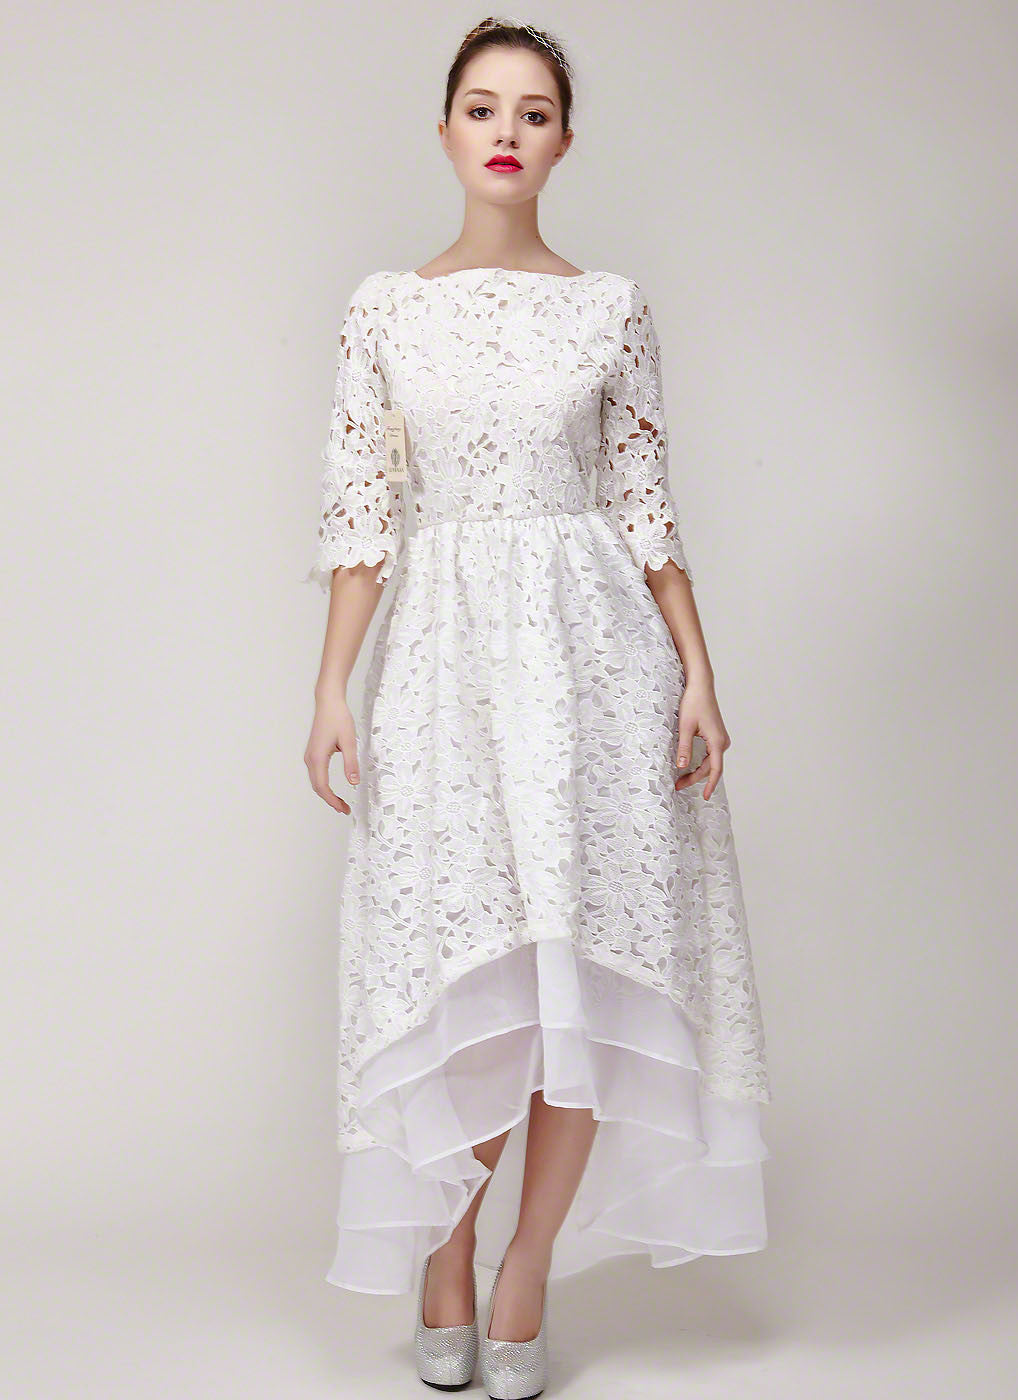 c5a672e1a3b White Lace High Low Lace Wedding Dress with Exposed Organza Layered Skirt  Hem  Floral Lace